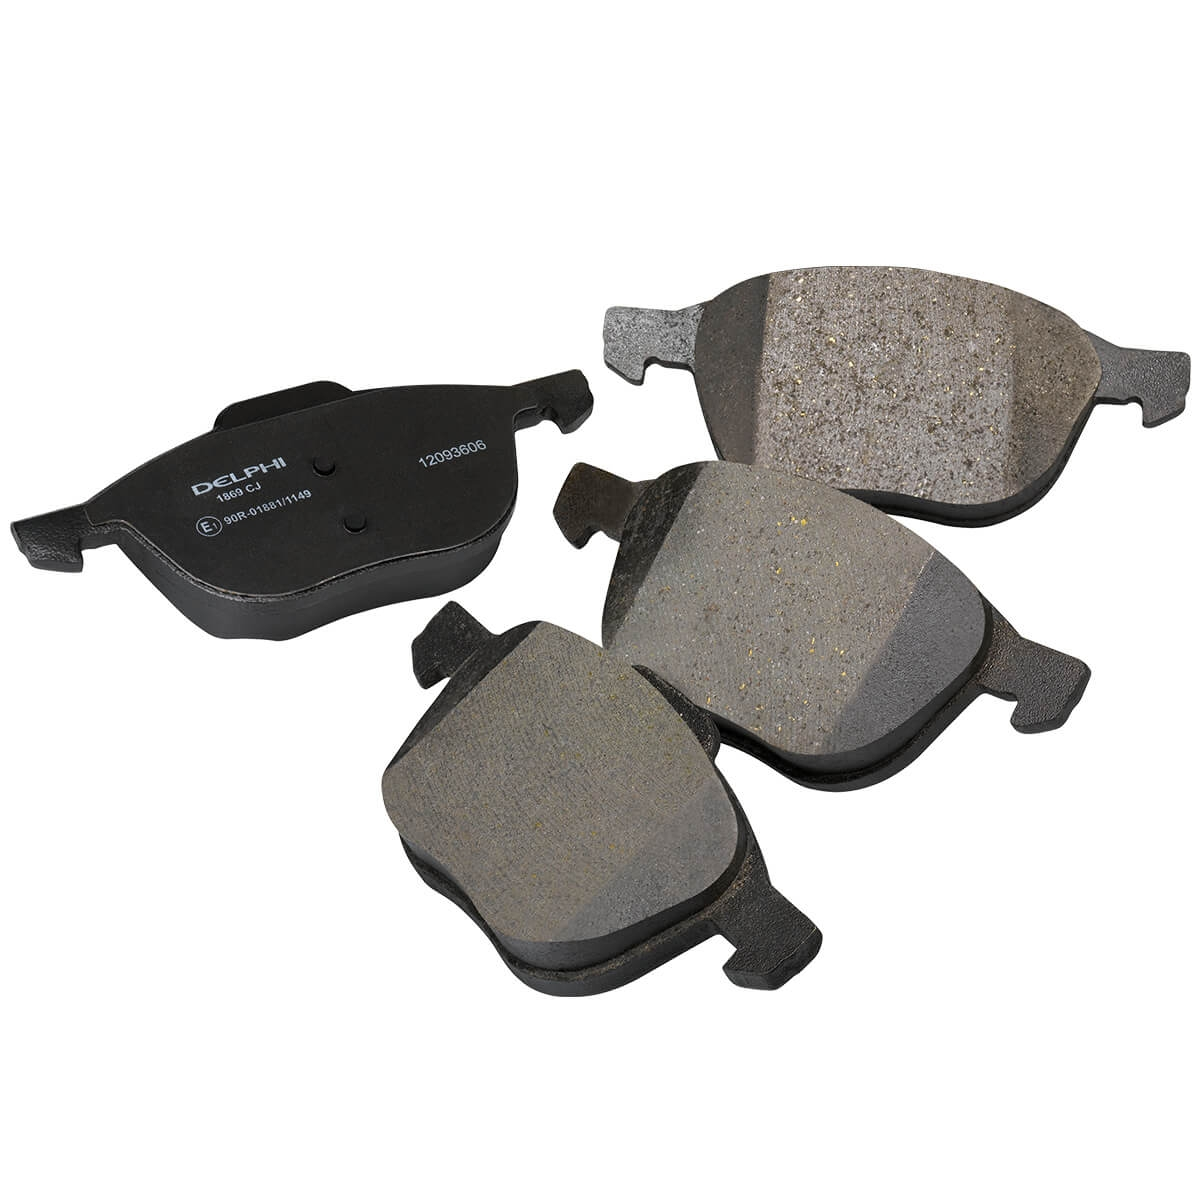 AUDI RS4 Brake Pad Set